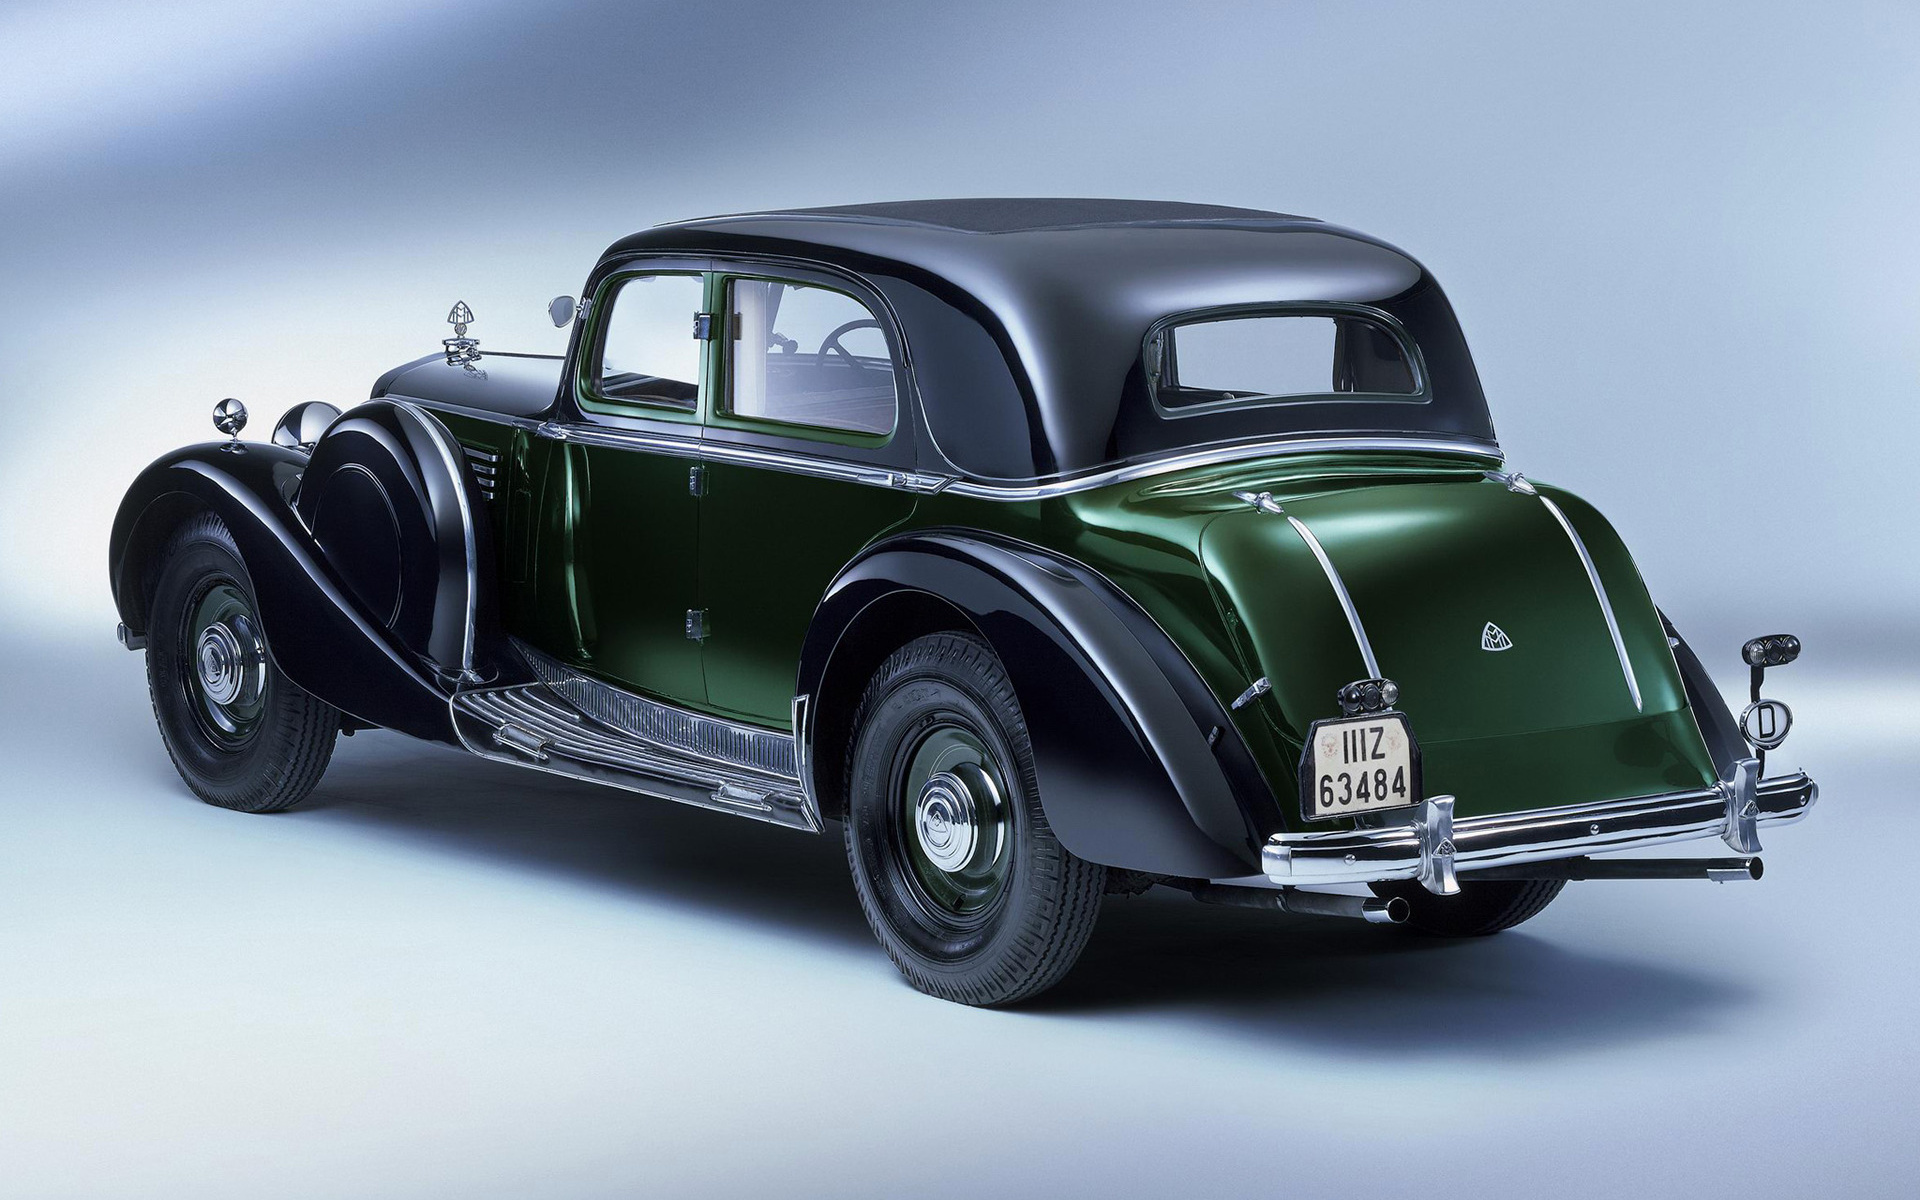 Mercedes Benz Coupe >> 1938 Maybach Zeppelin DS8 Coupe Limousine - Wallpapers and ...